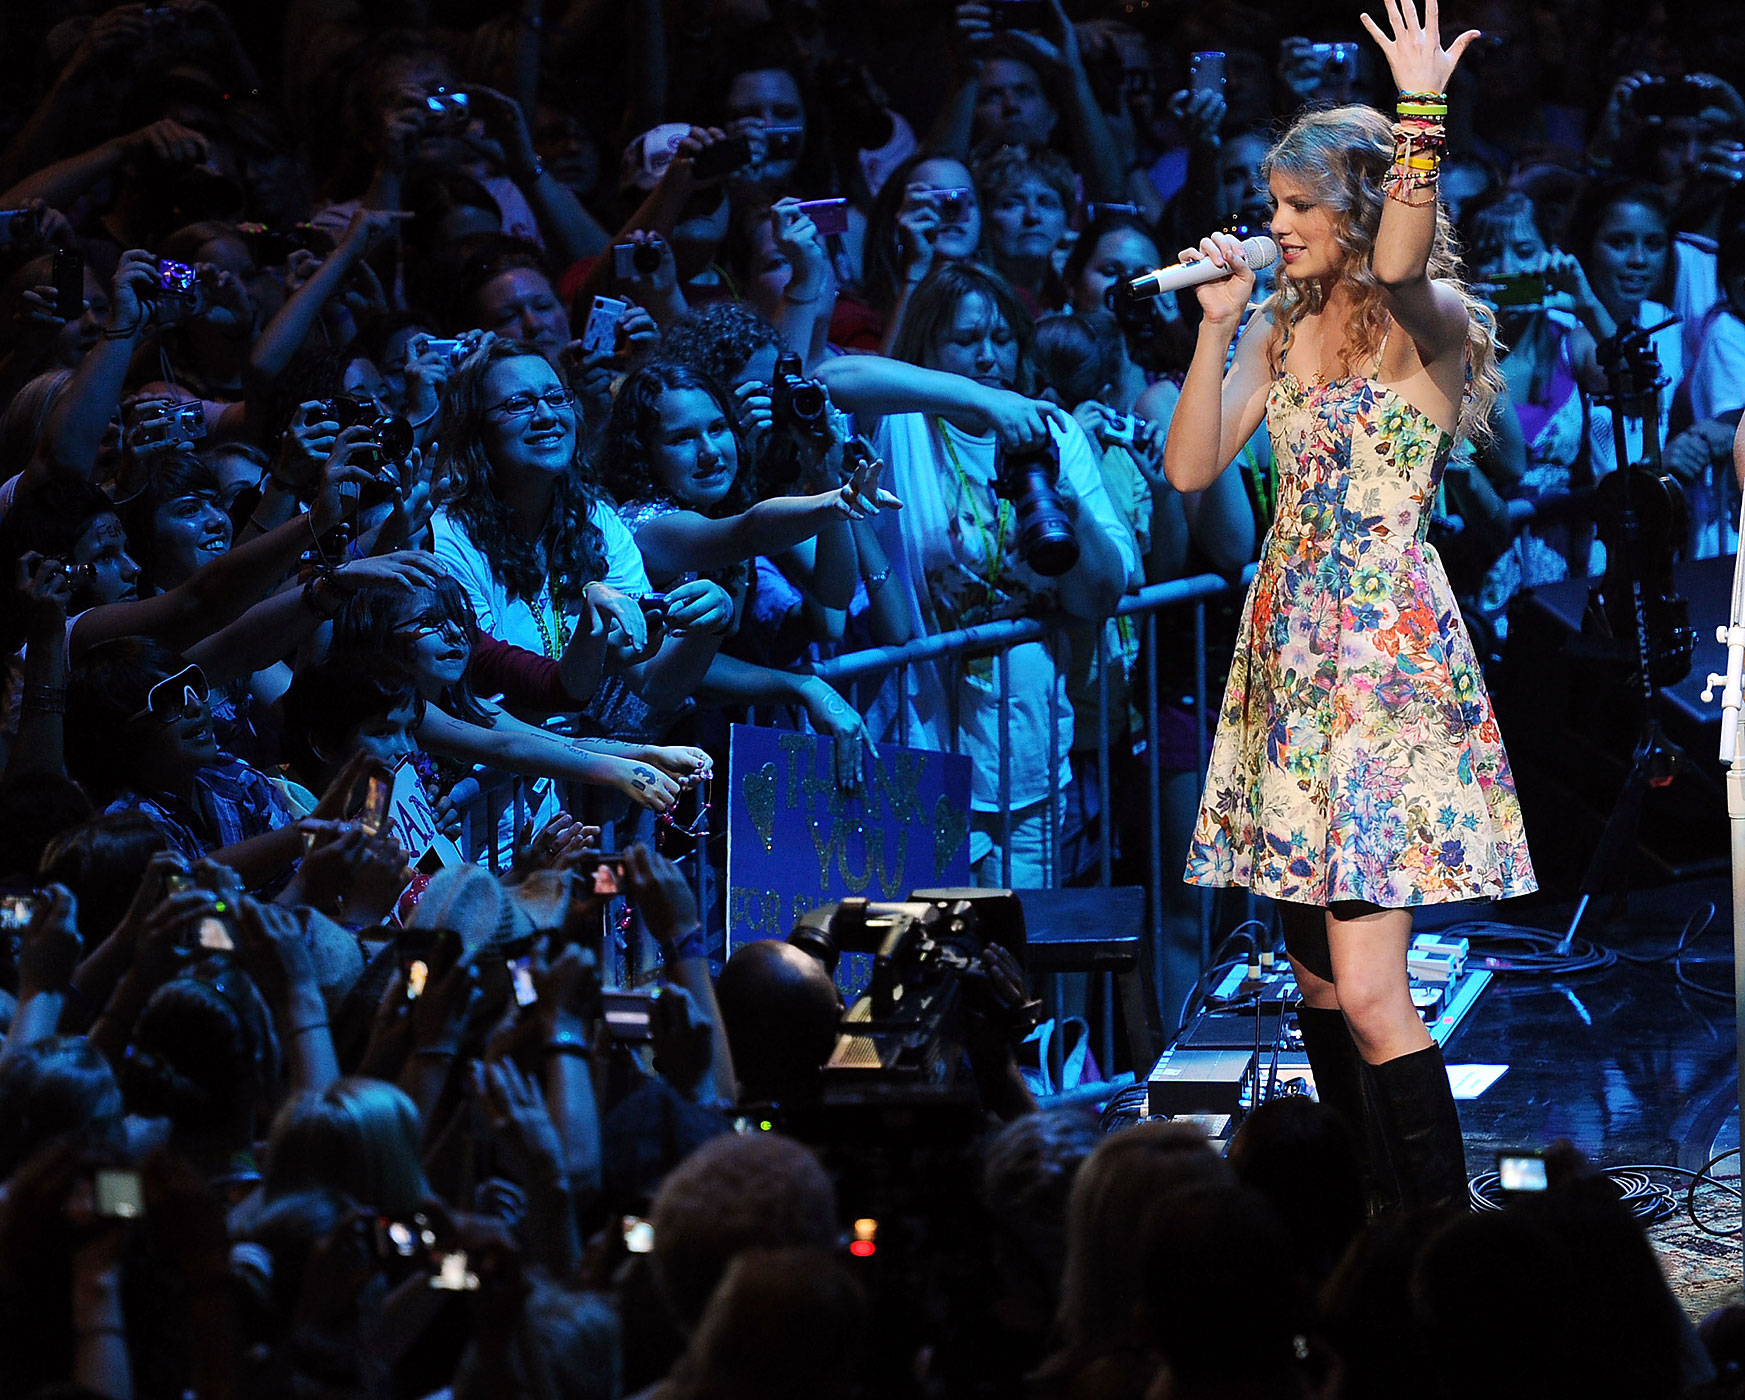 Taylor Swift performs at the CMA Music Festival in Nashville, Tennessee in 2010.